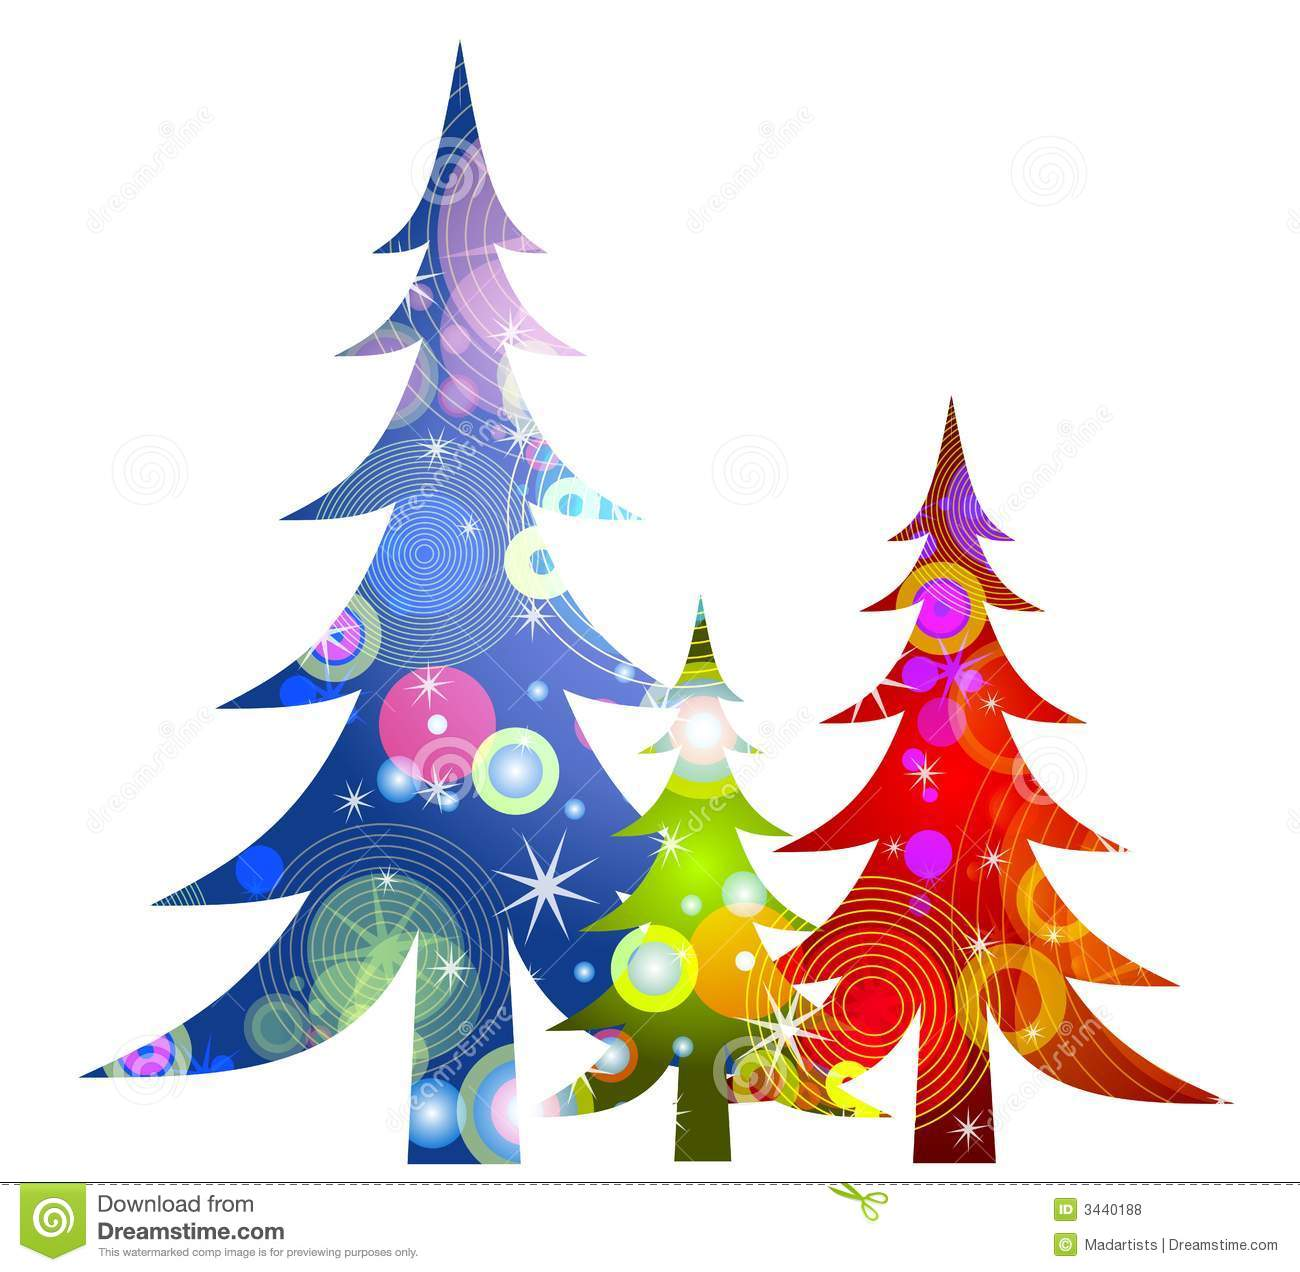 Download free christmas clip art images - ClipartFest free download